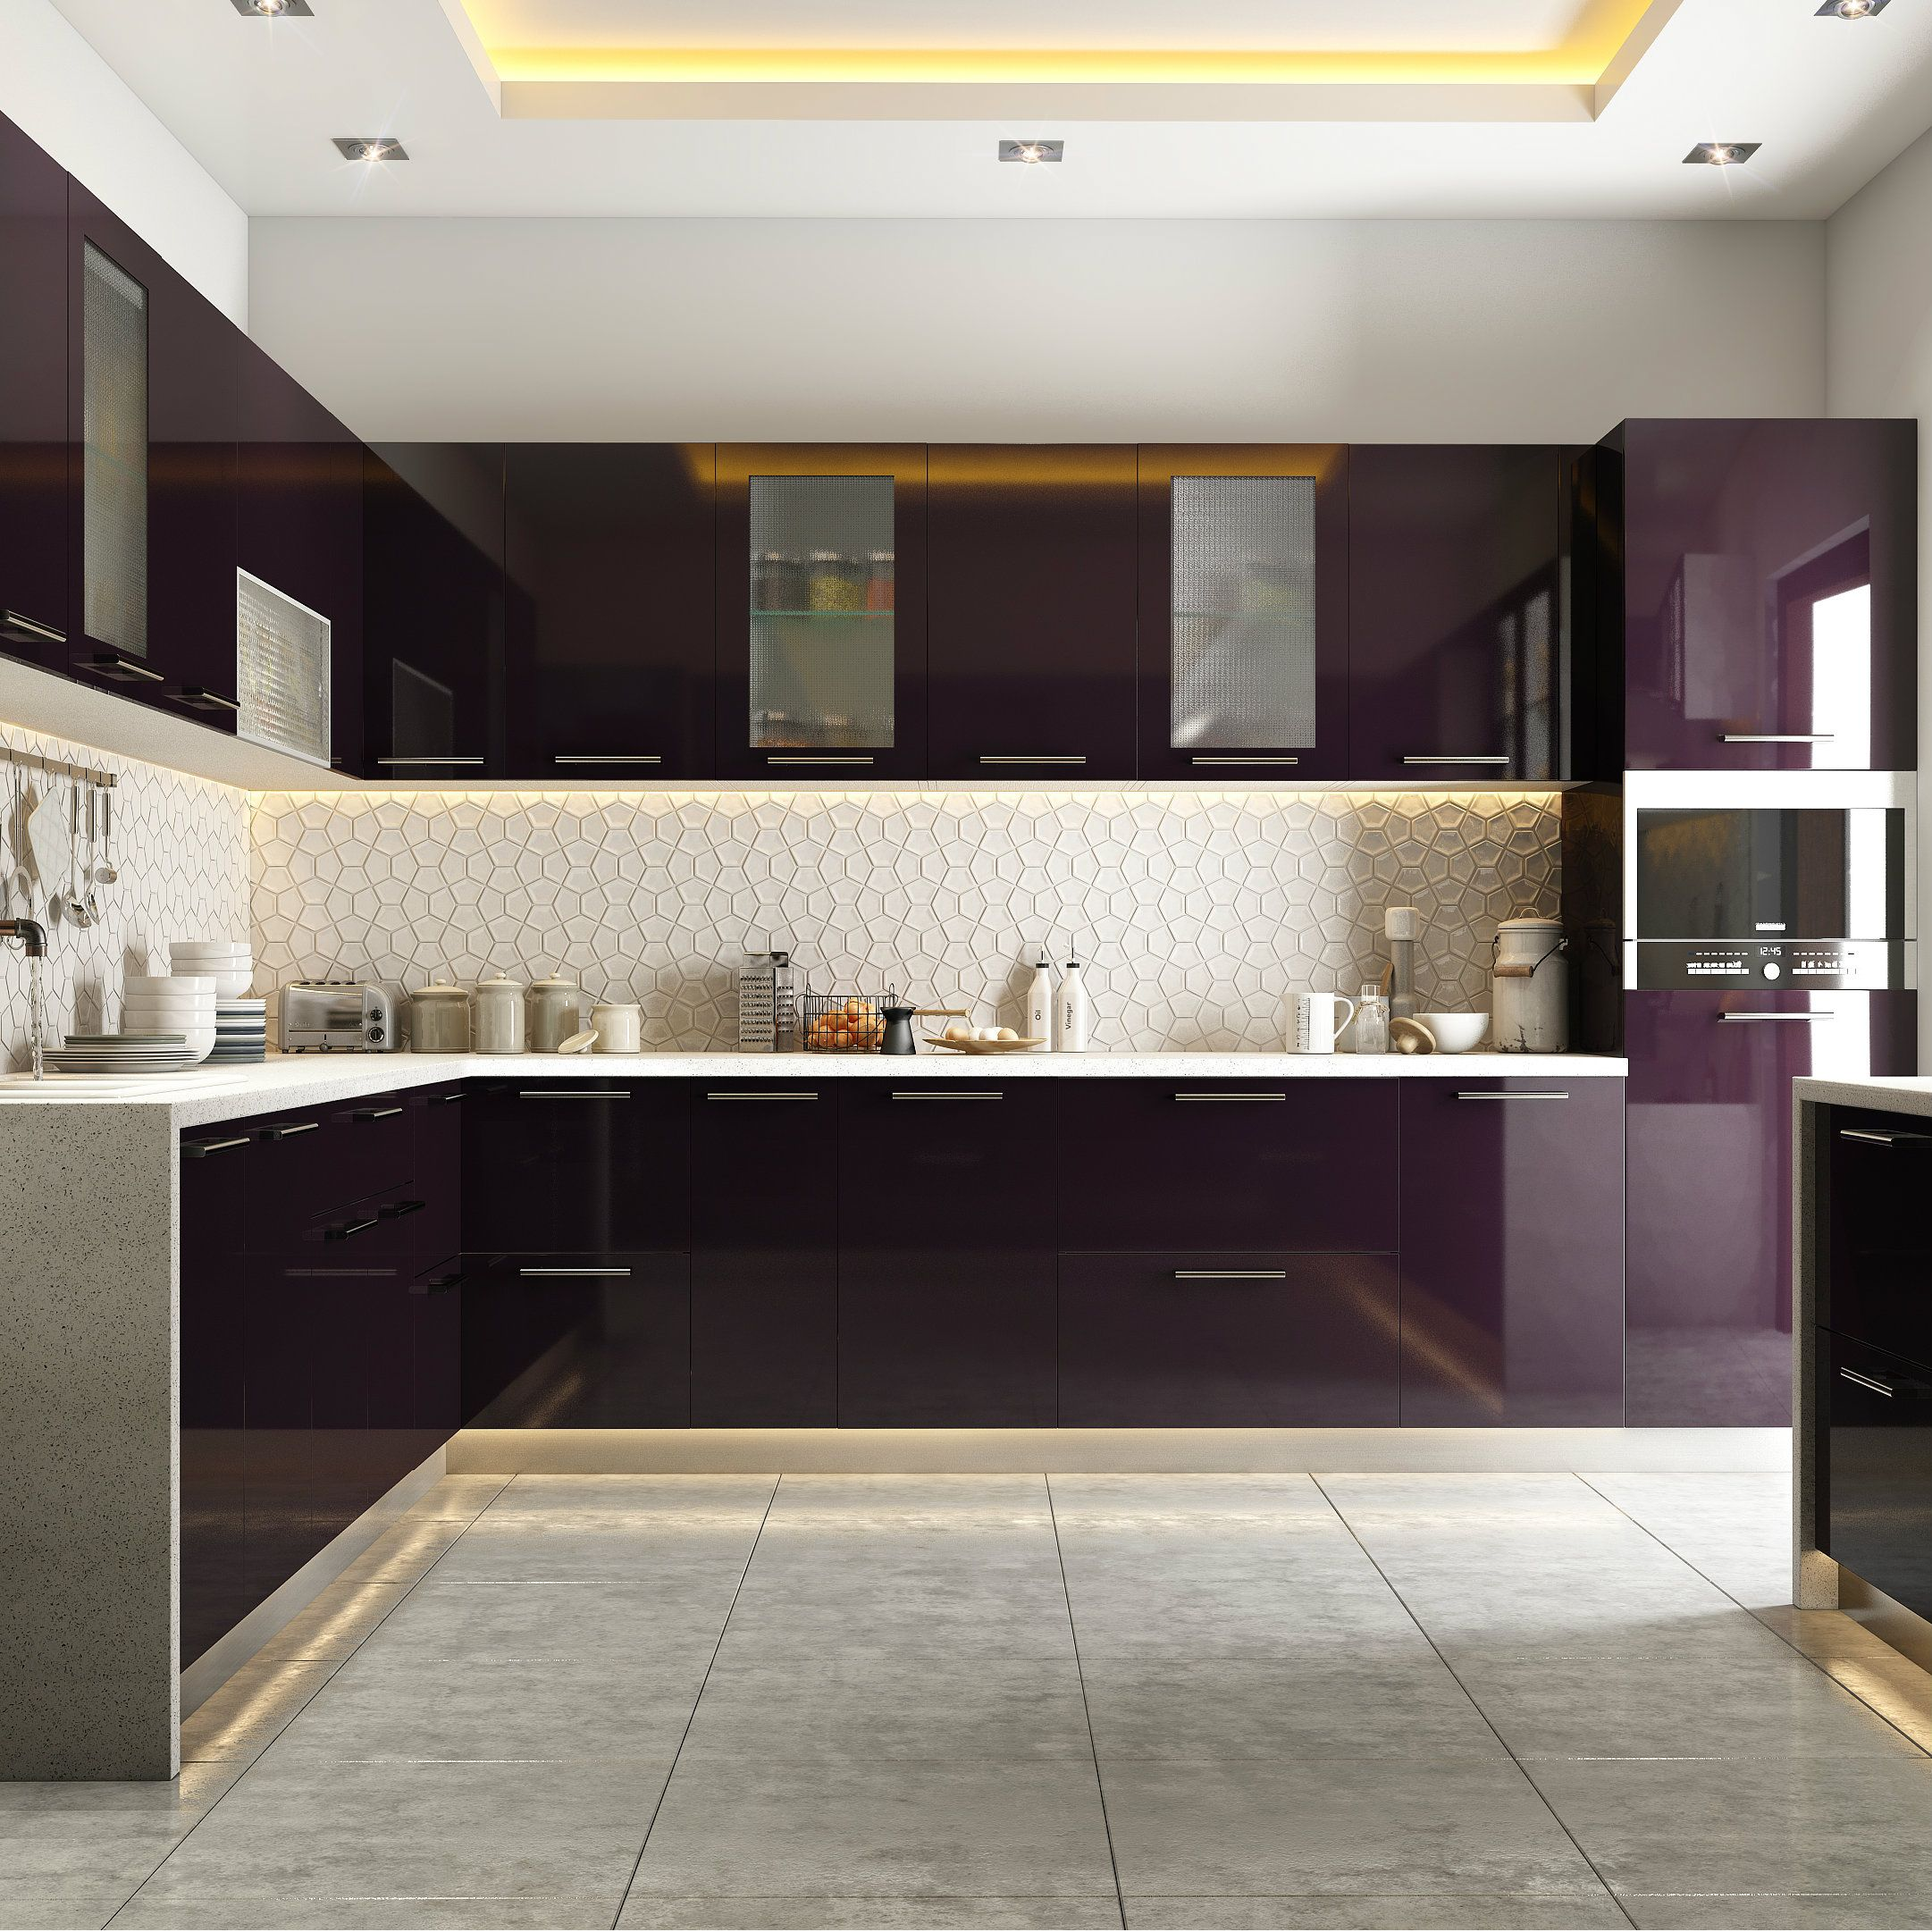 Wonderful Modular Kitchen Styled In Burgundy Hues